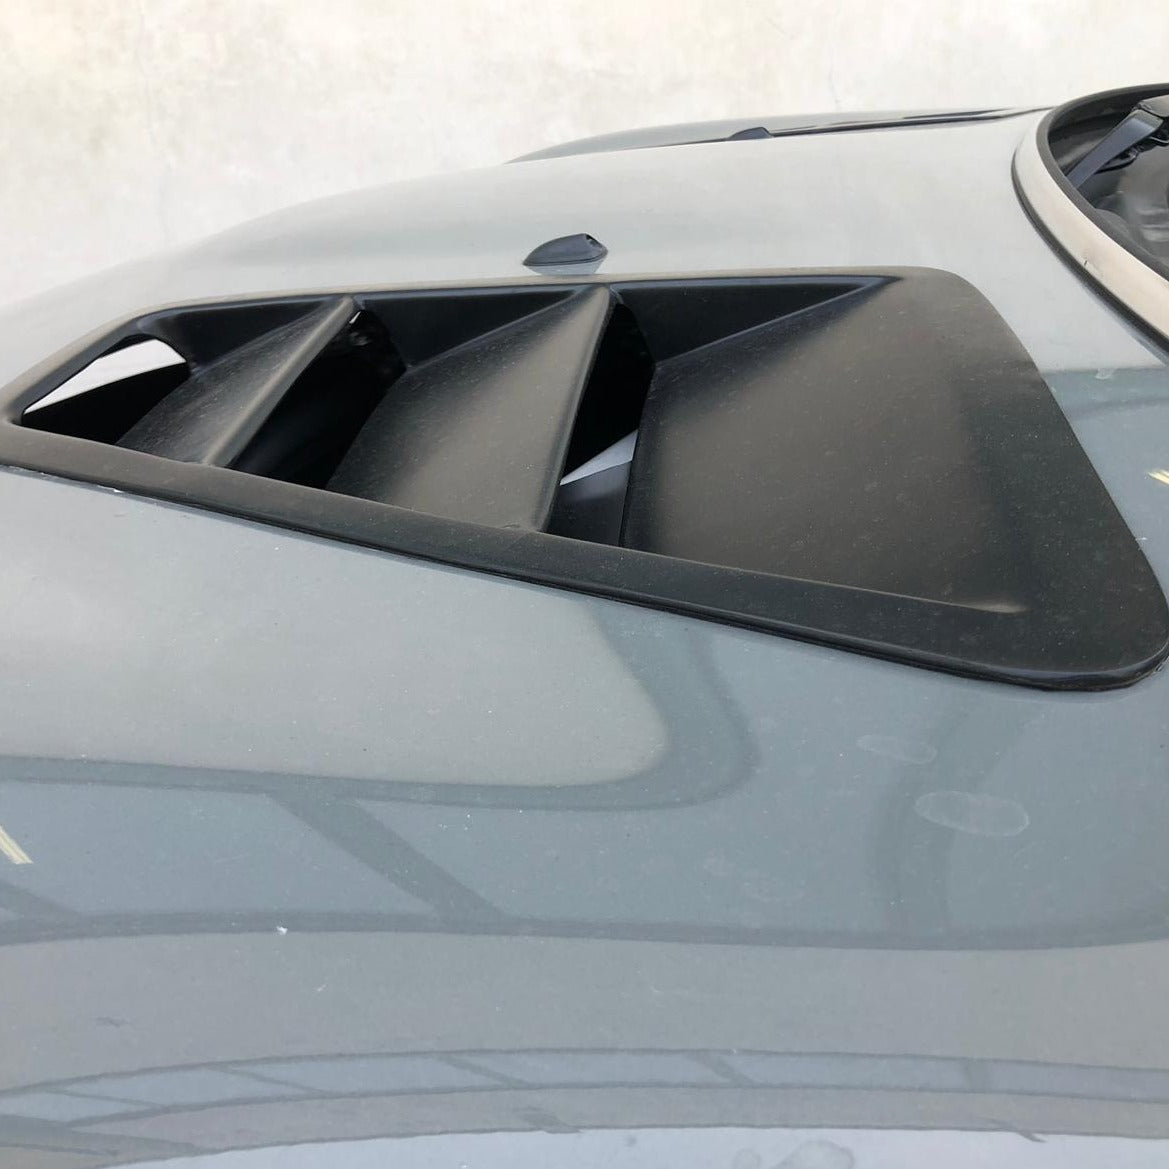 Bonnet air vents - All models